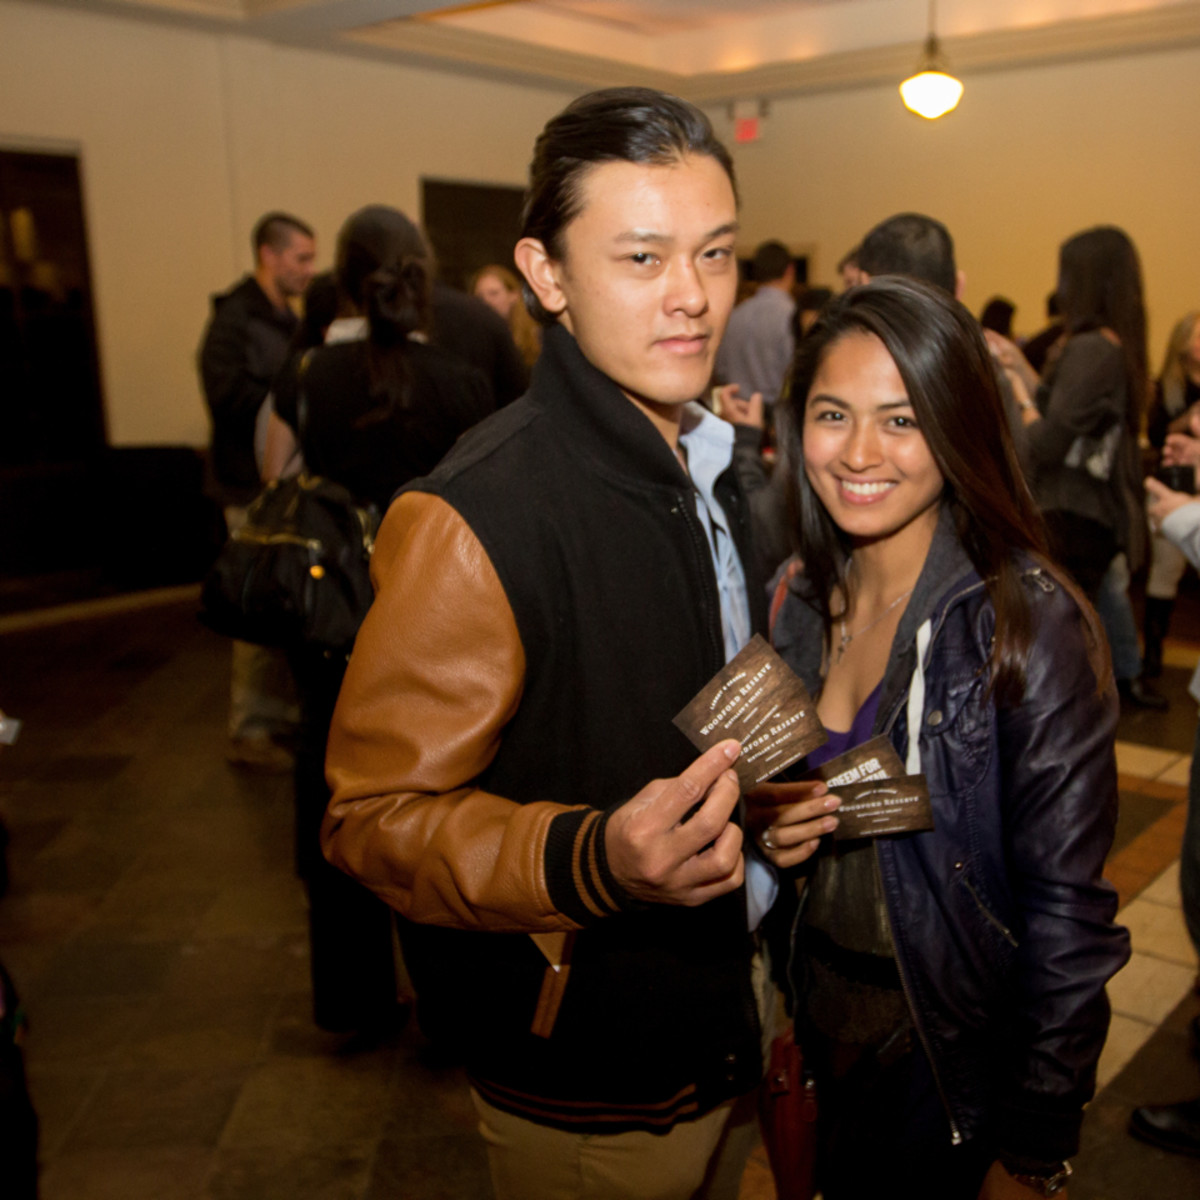 Woodford Reserve event Houston Samuel Le, Crista Faith Castro